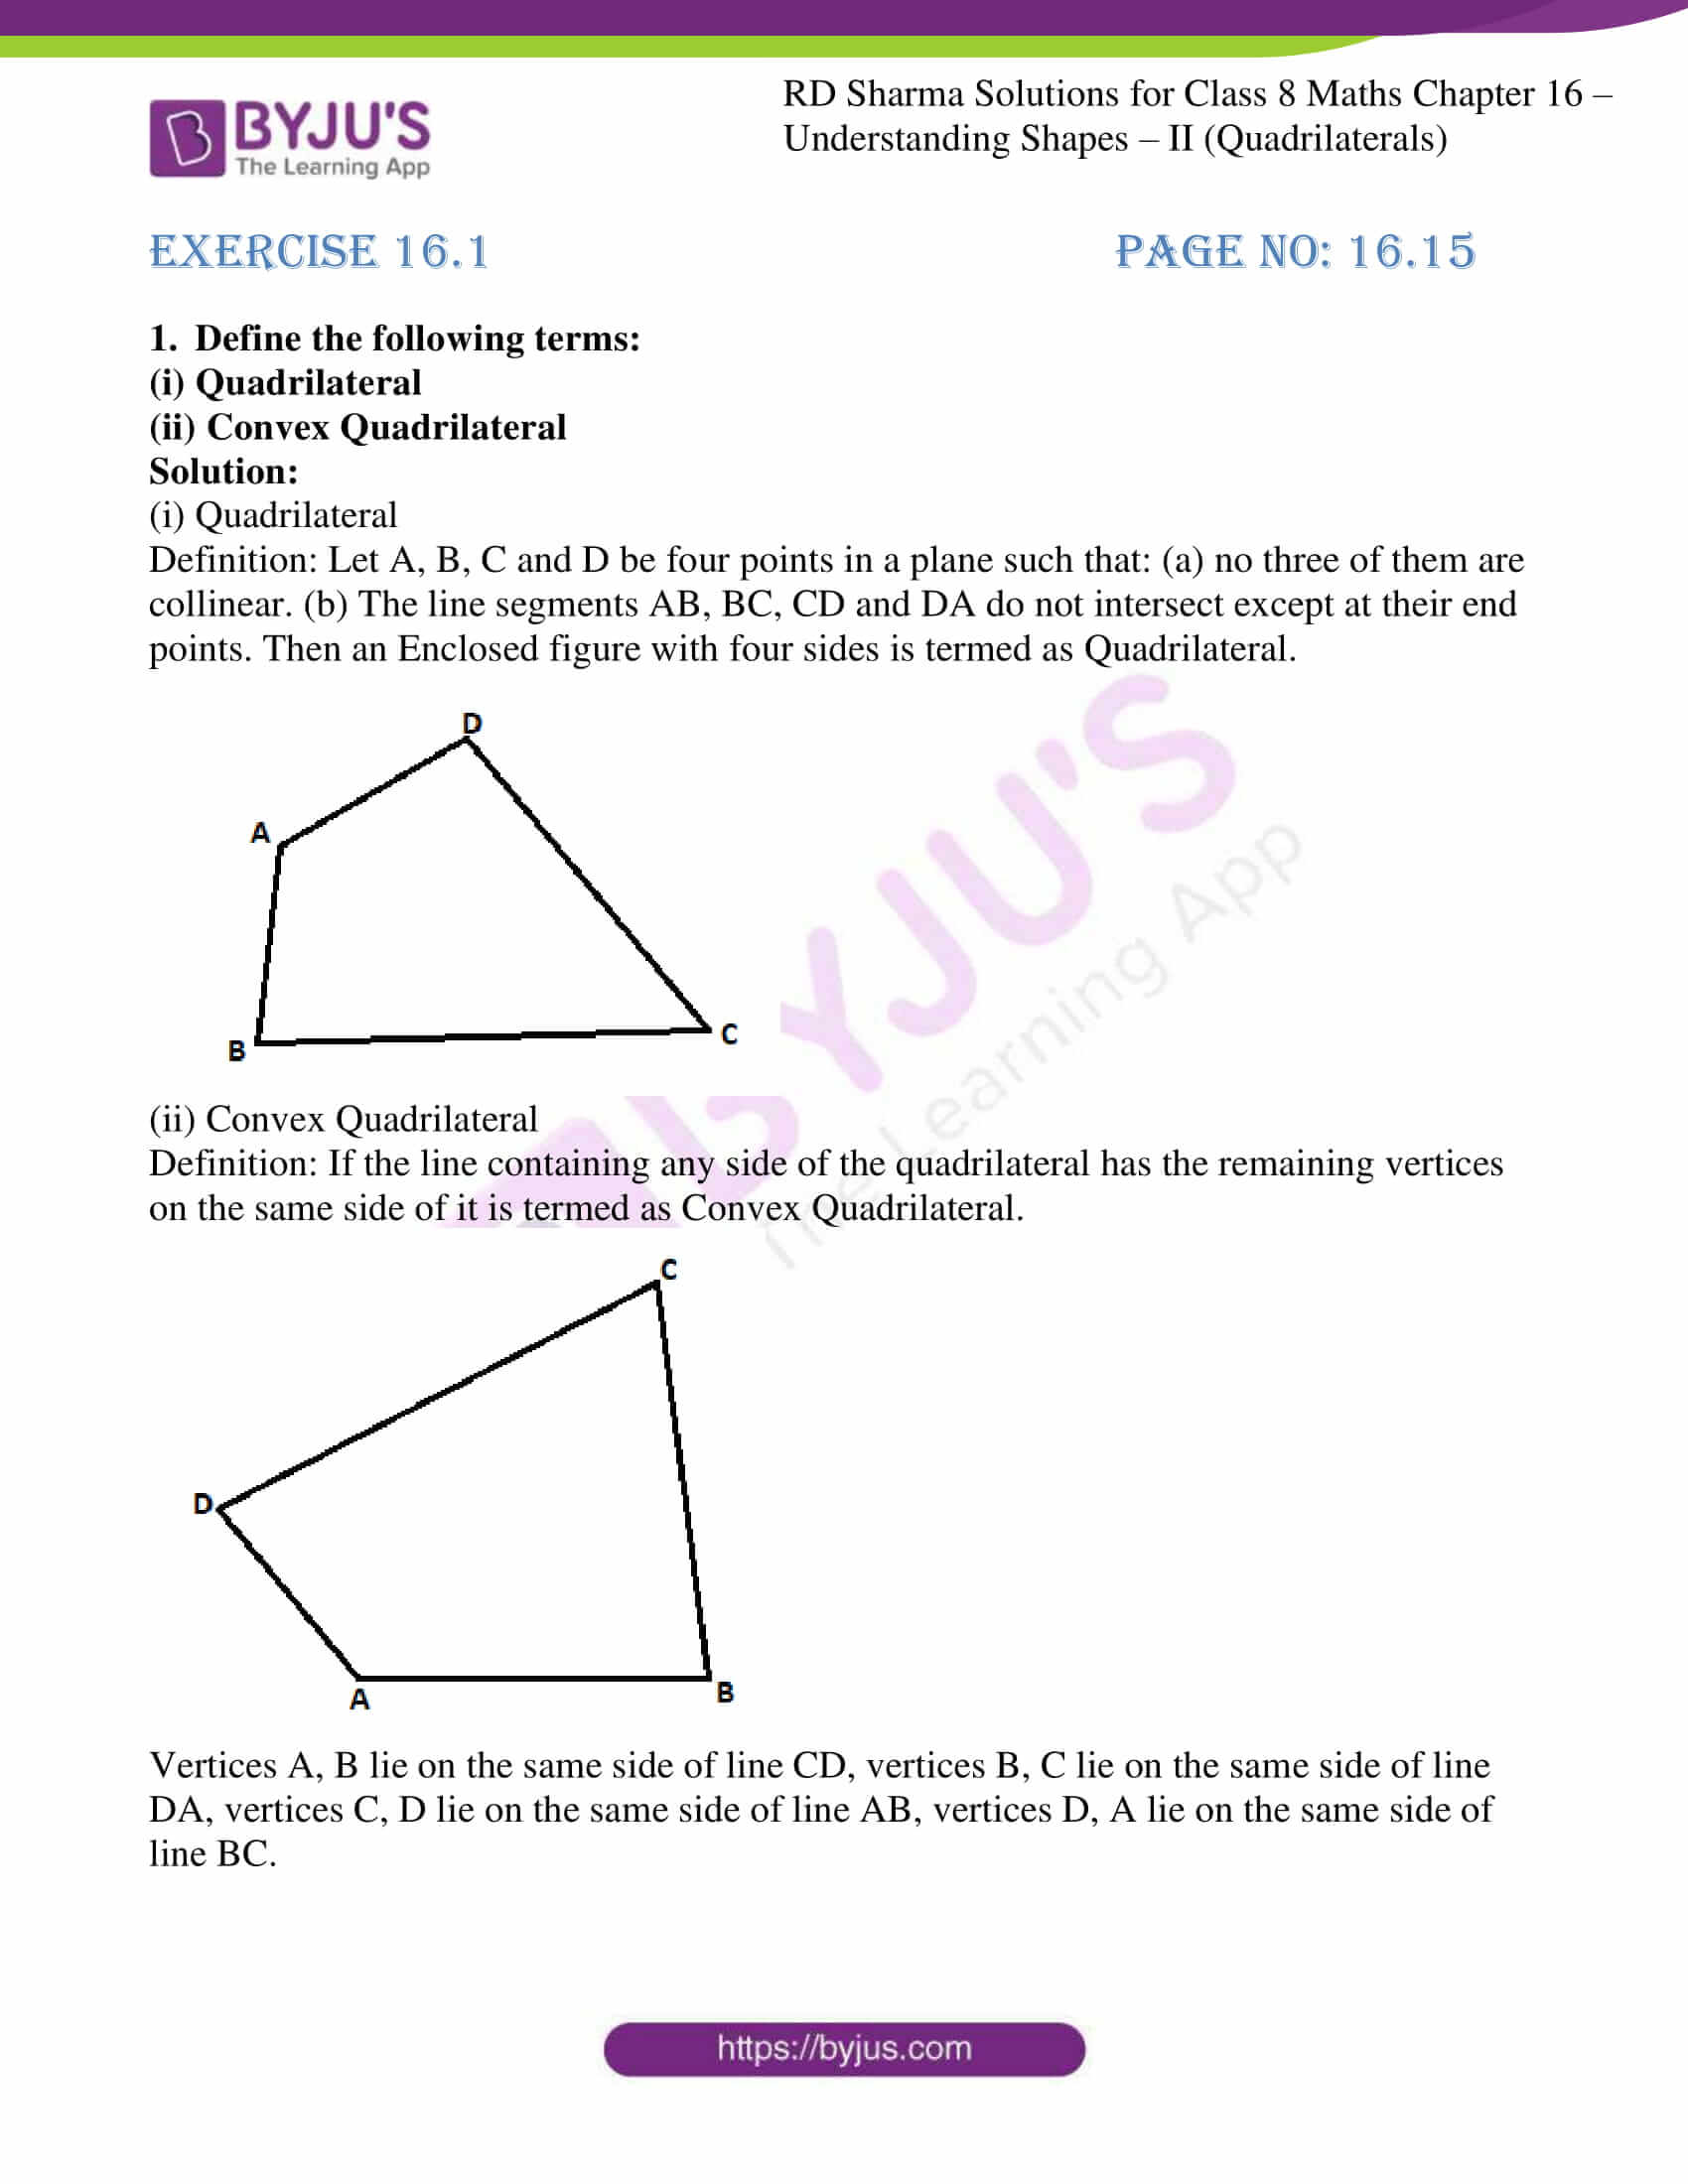 hight resolution of RD Sharma Solutions for Class 8 Chapter 16 Understanding Shapes- II ( Quadrilaterals) download free pdf